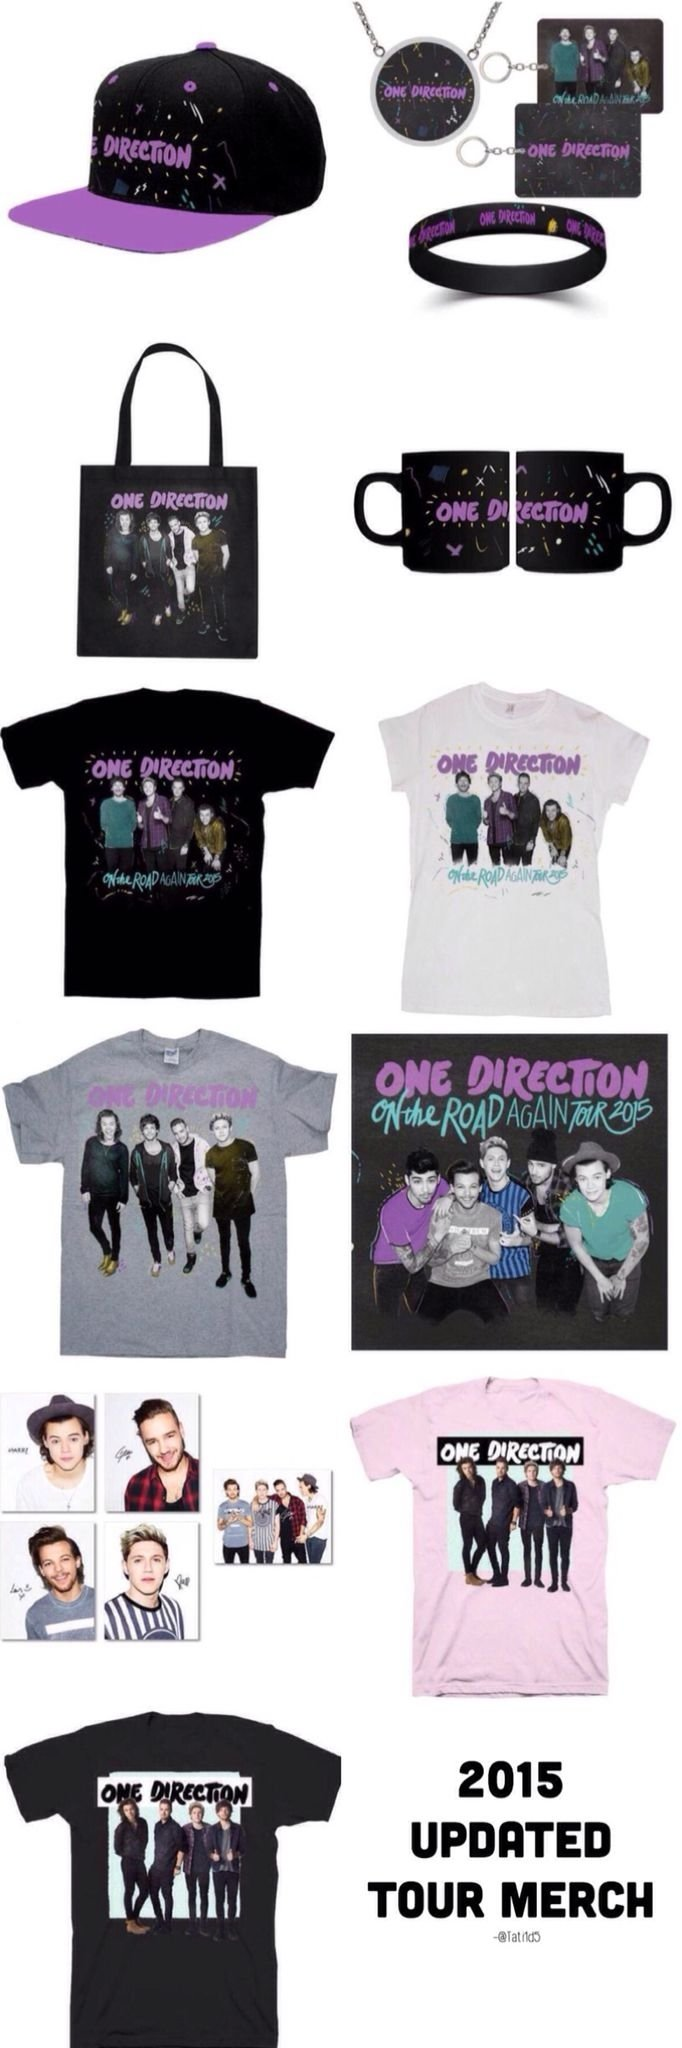 10 Fashionable One Direction T Shirt Ideas 12 best 1d needs images on pinterest one direction shirts clothes 1 2021